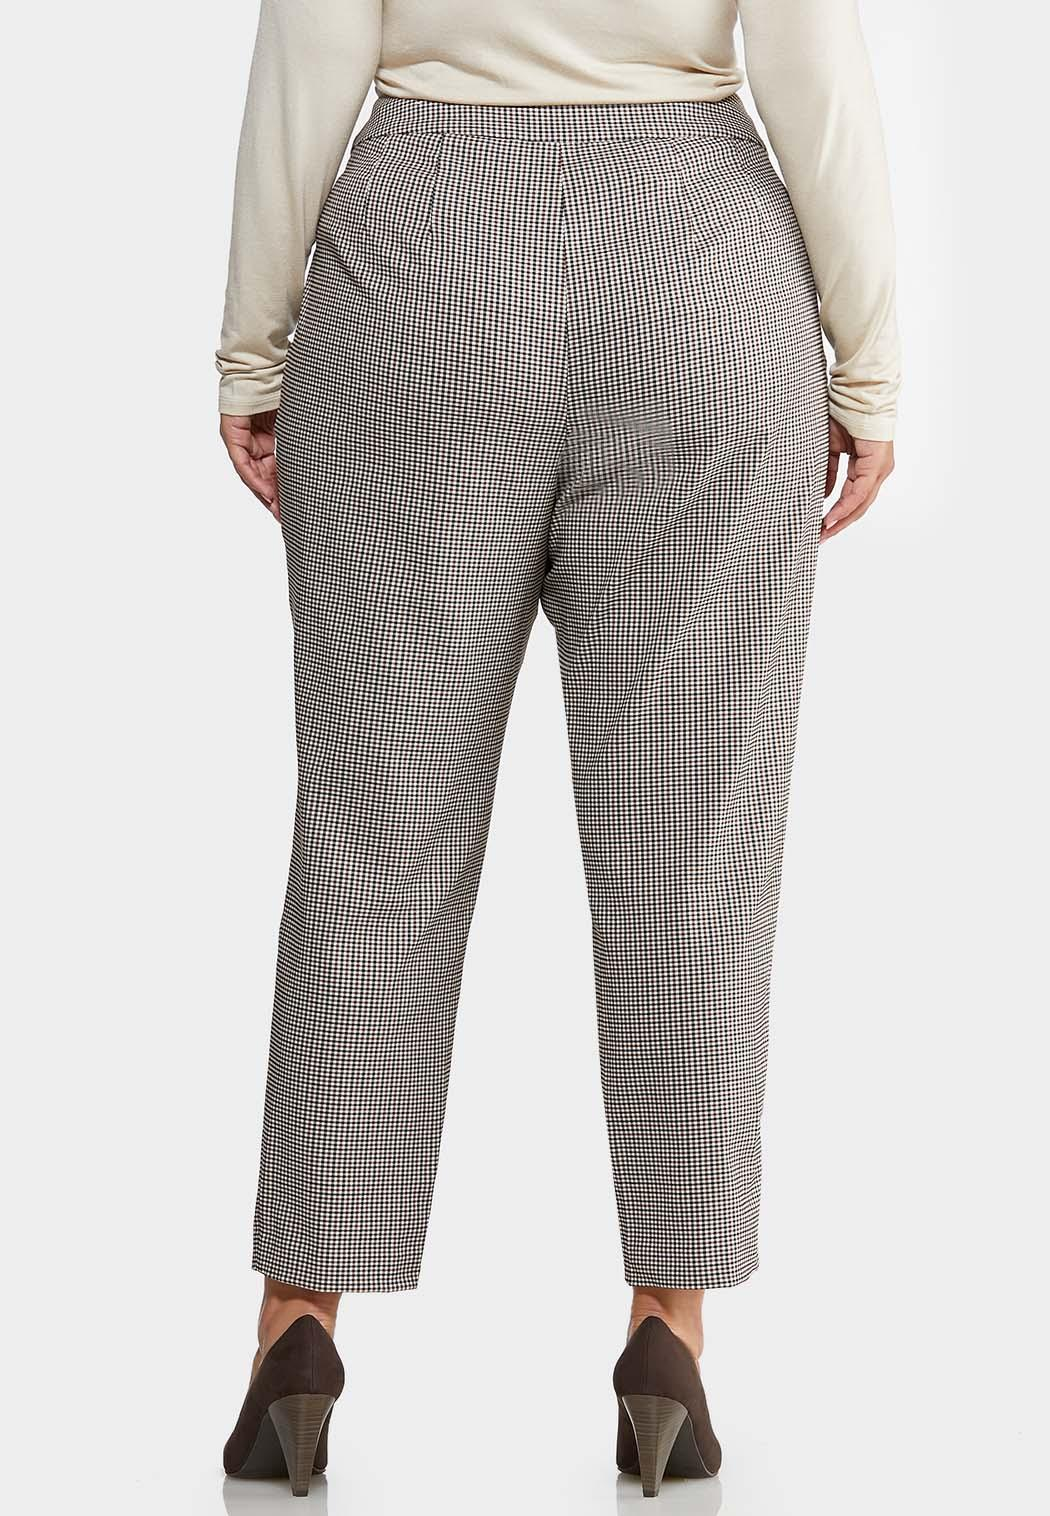 Plus Size Slim Checkered Ankle Pants (Item #43968022)